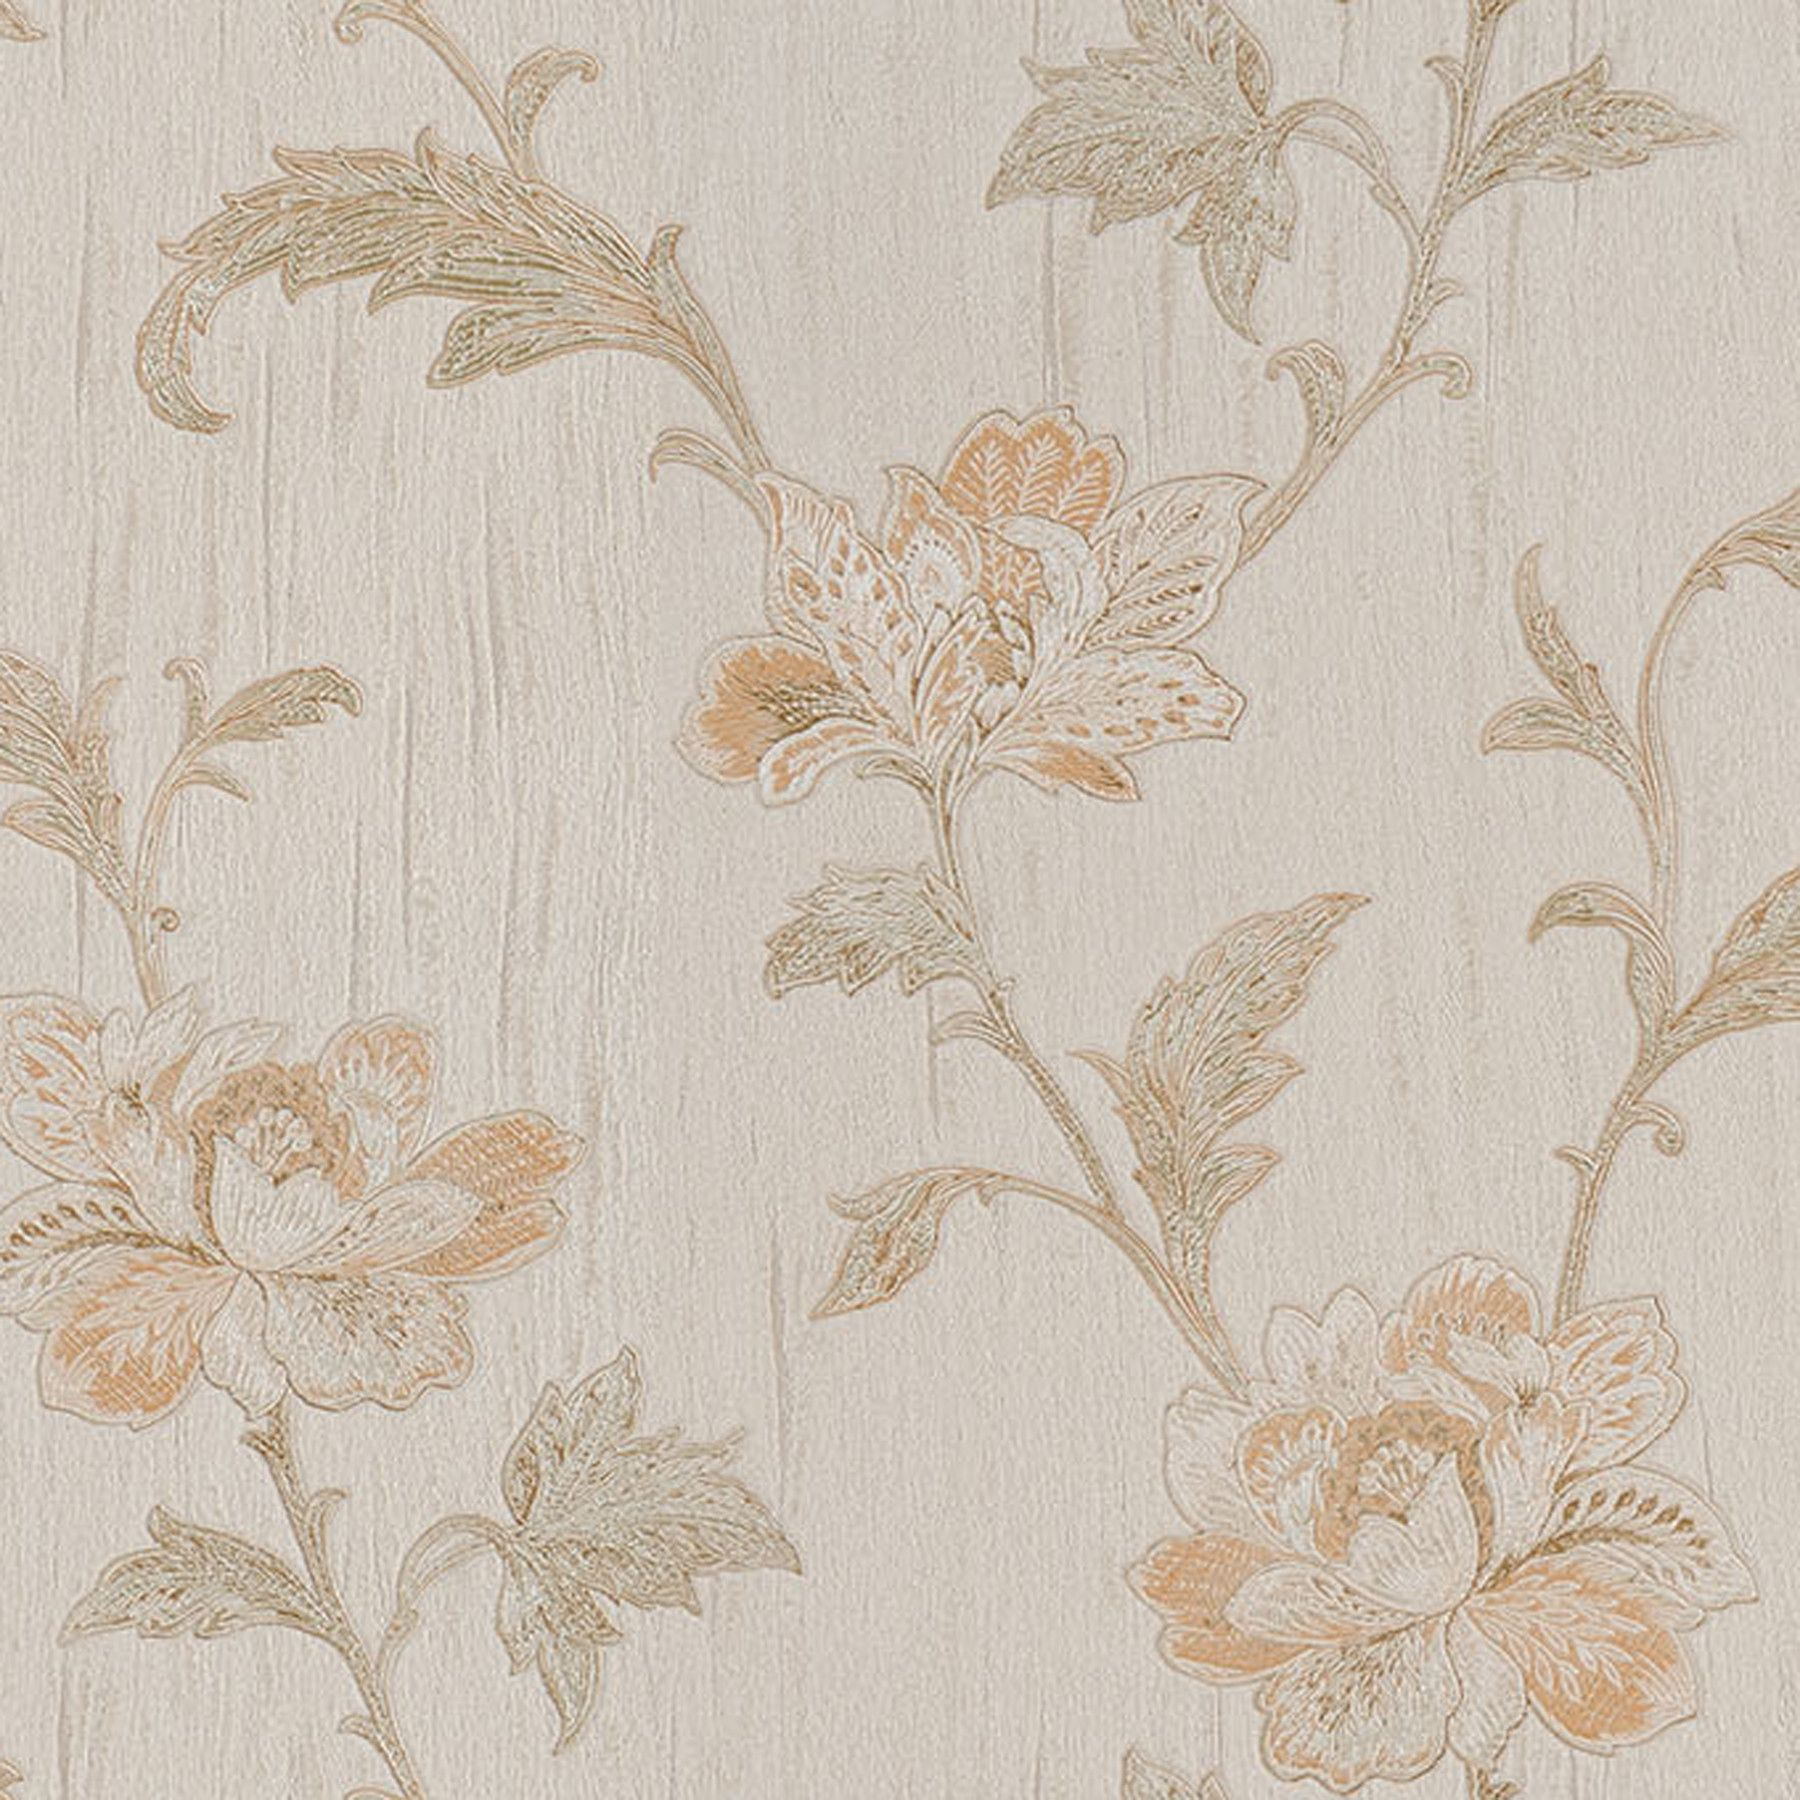 "Venezia Gemma Embroidered Jacobean 33' x 27"" Floral 3D Embossed Wallpaper"